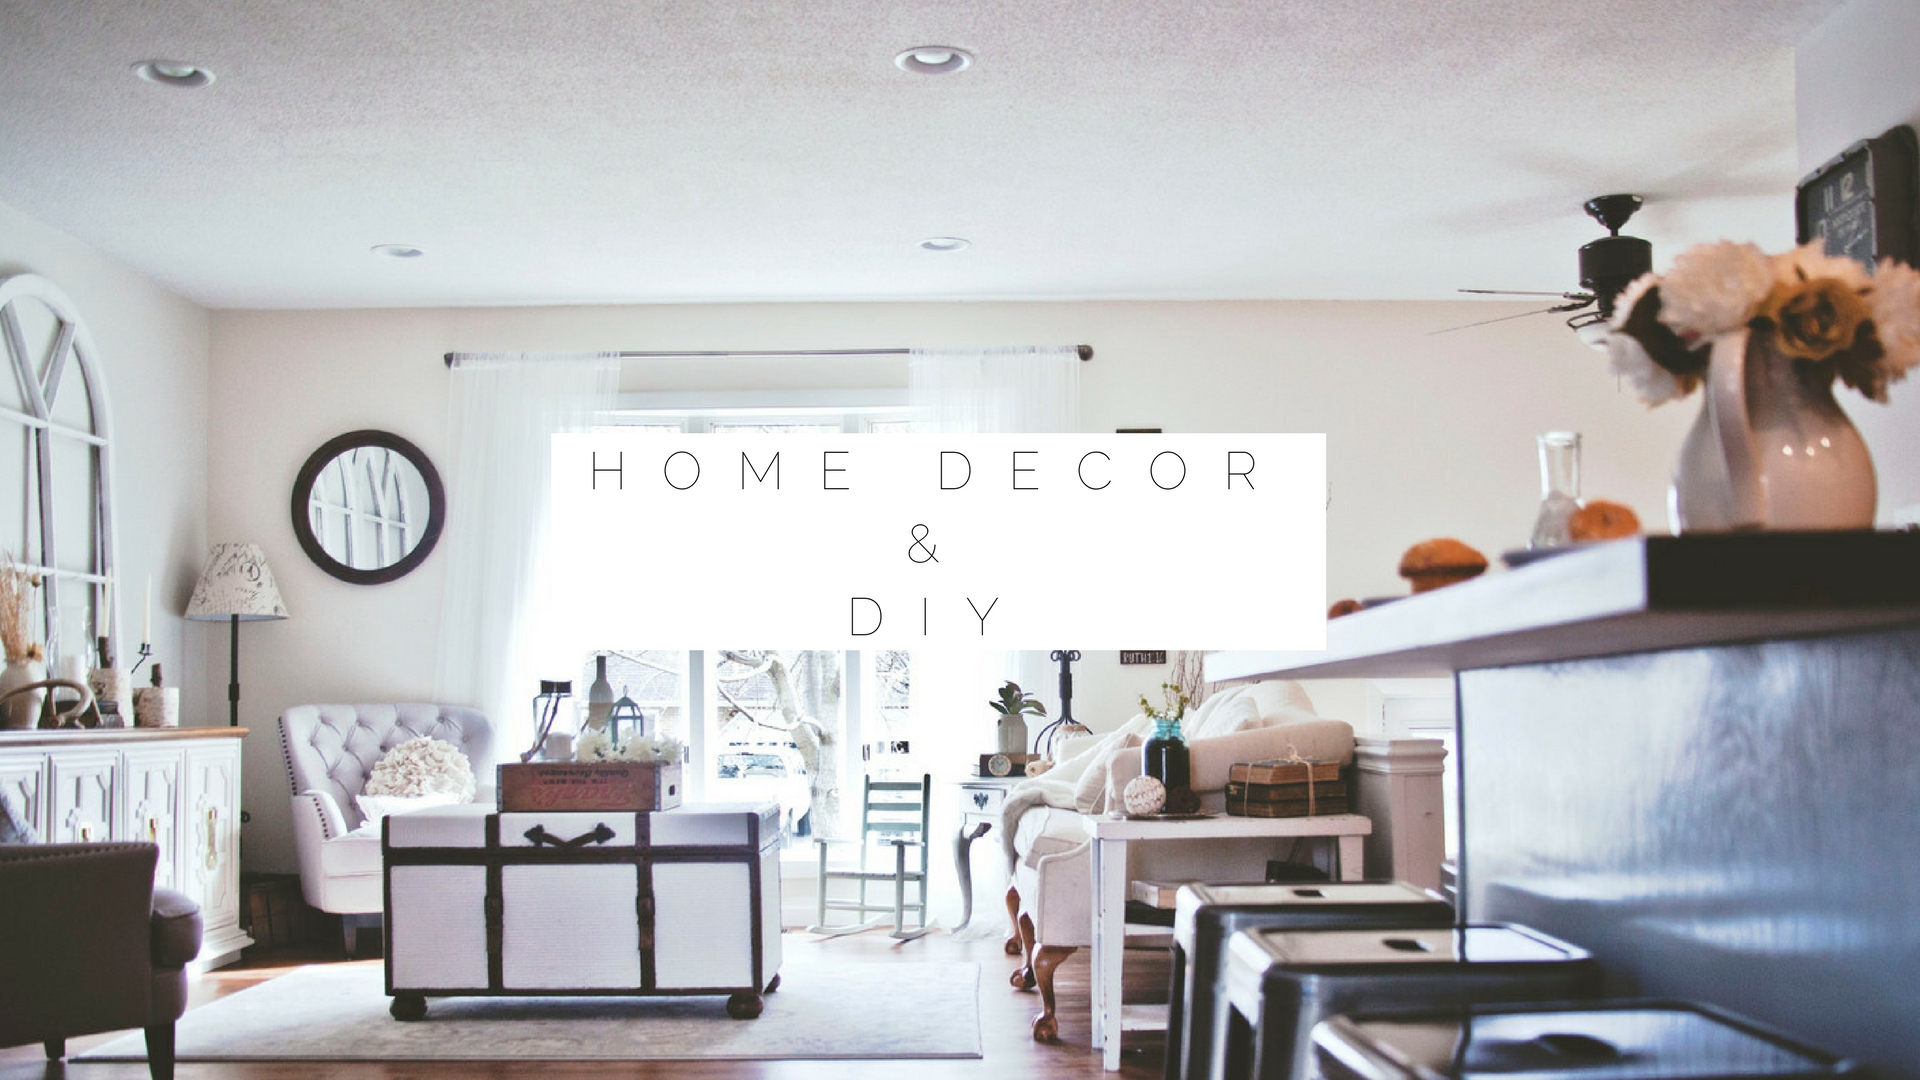 HOME DECOR-TESSA KIRBY